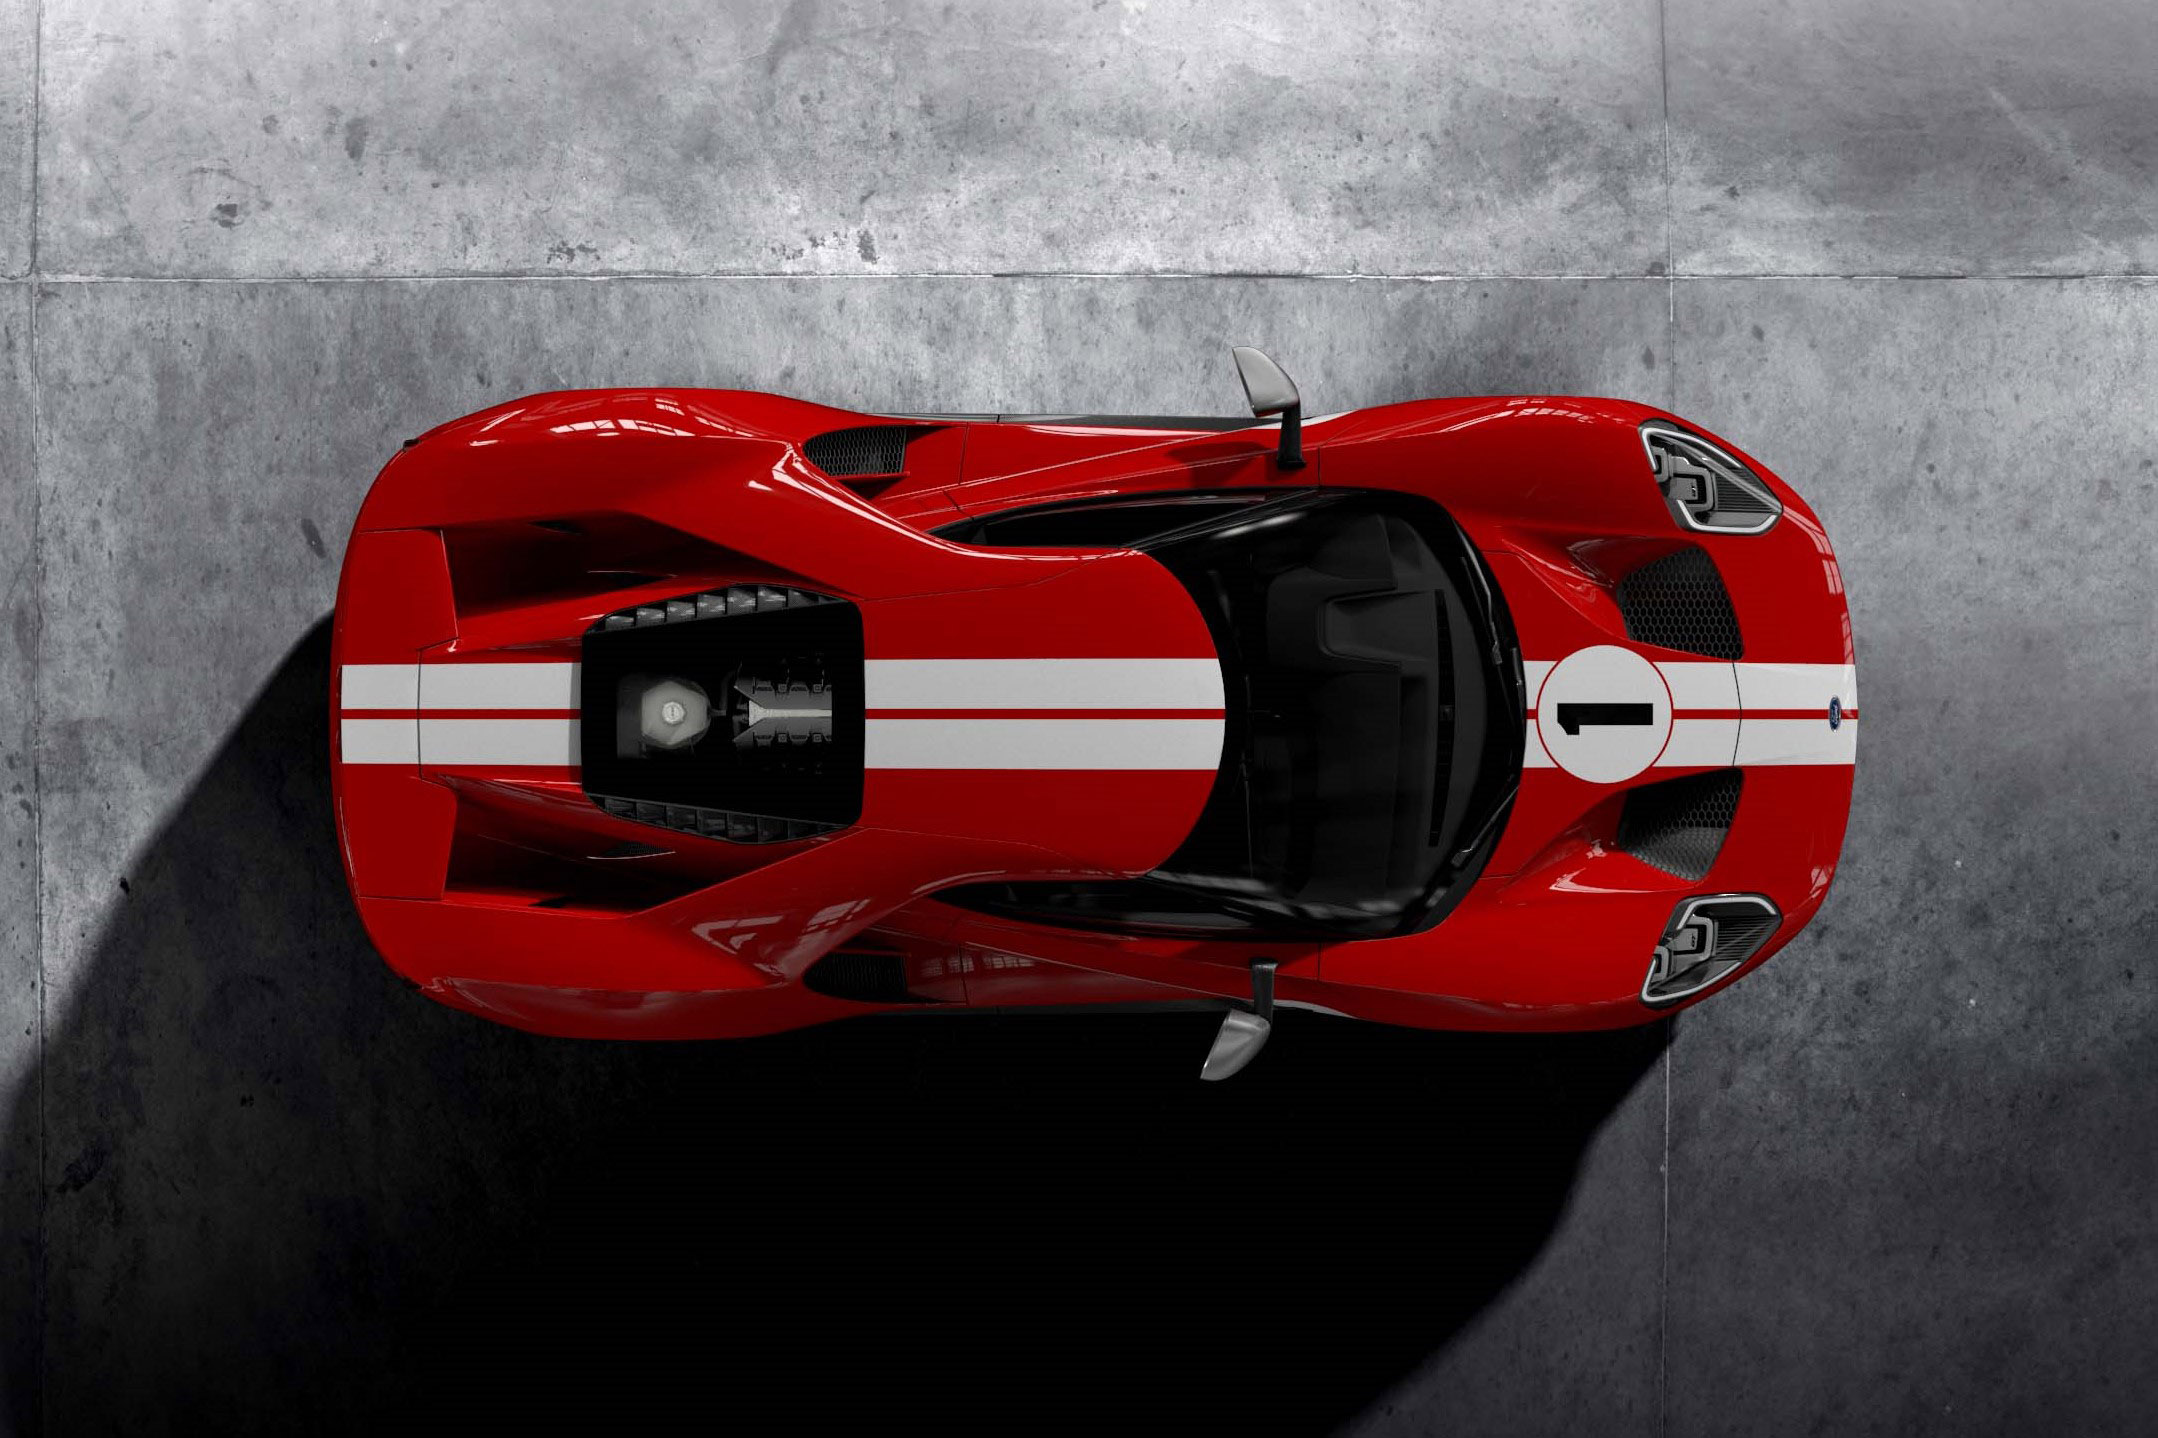 u201cContinuing with a 2018 Ford GT based on the winning GT40 Mark IV race car was simply something we needed to do.u201d & Limited Edition Ford GT u002767 Heritage Edition Available in 2018 ... markmcfarlin.com